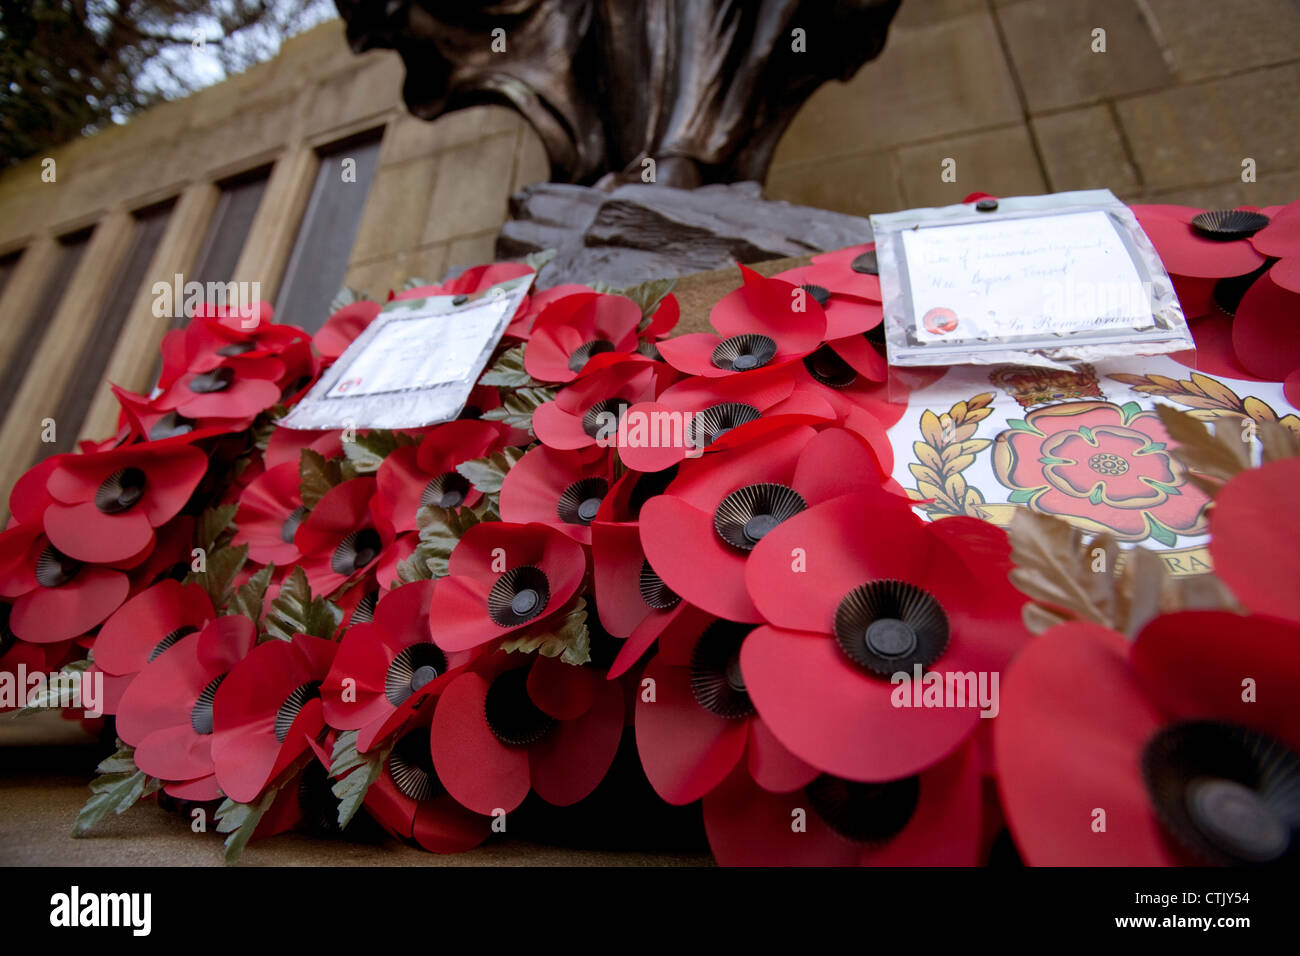 Poppy wreaths at a war memorial on Armistice Day in an English town - Stock Image